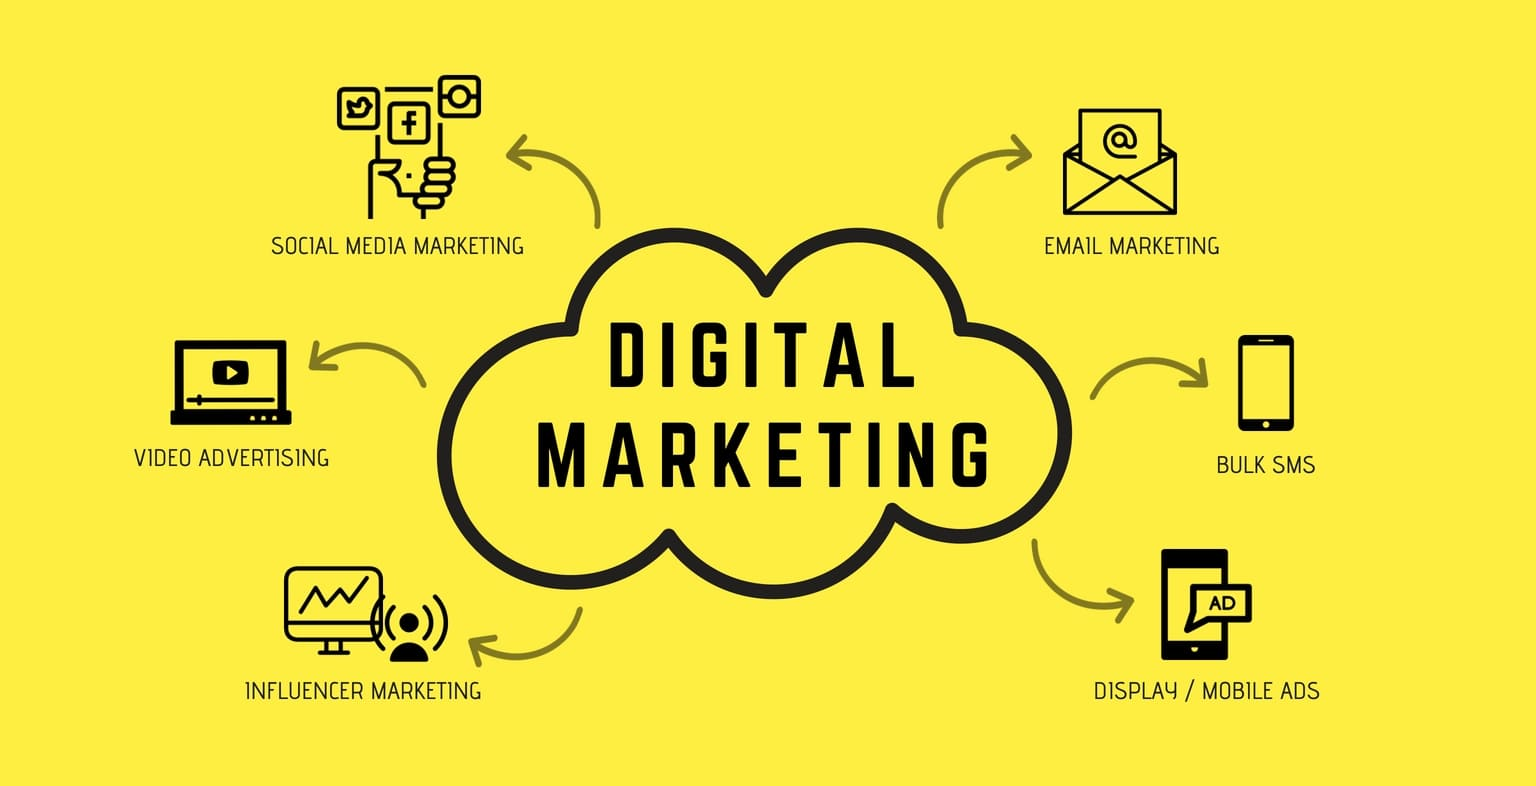 Digital Marketing Companies In South Africa: What Are The Services They Offer